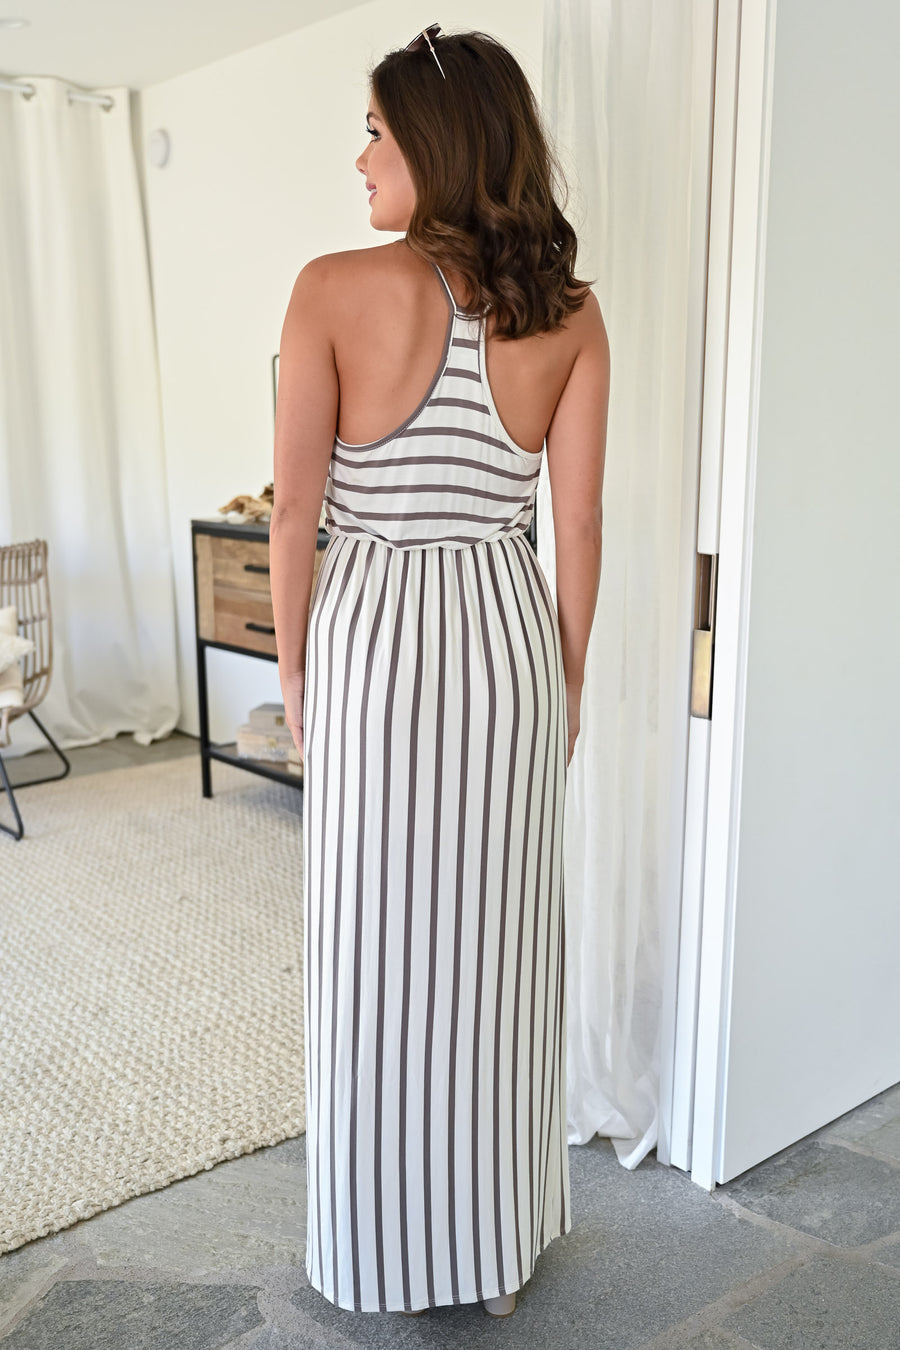 Moving On Up Maxi Dress - Ivory womens casual striped scoop neck long dress closet candy  front 2; Model: Hannah Sluss